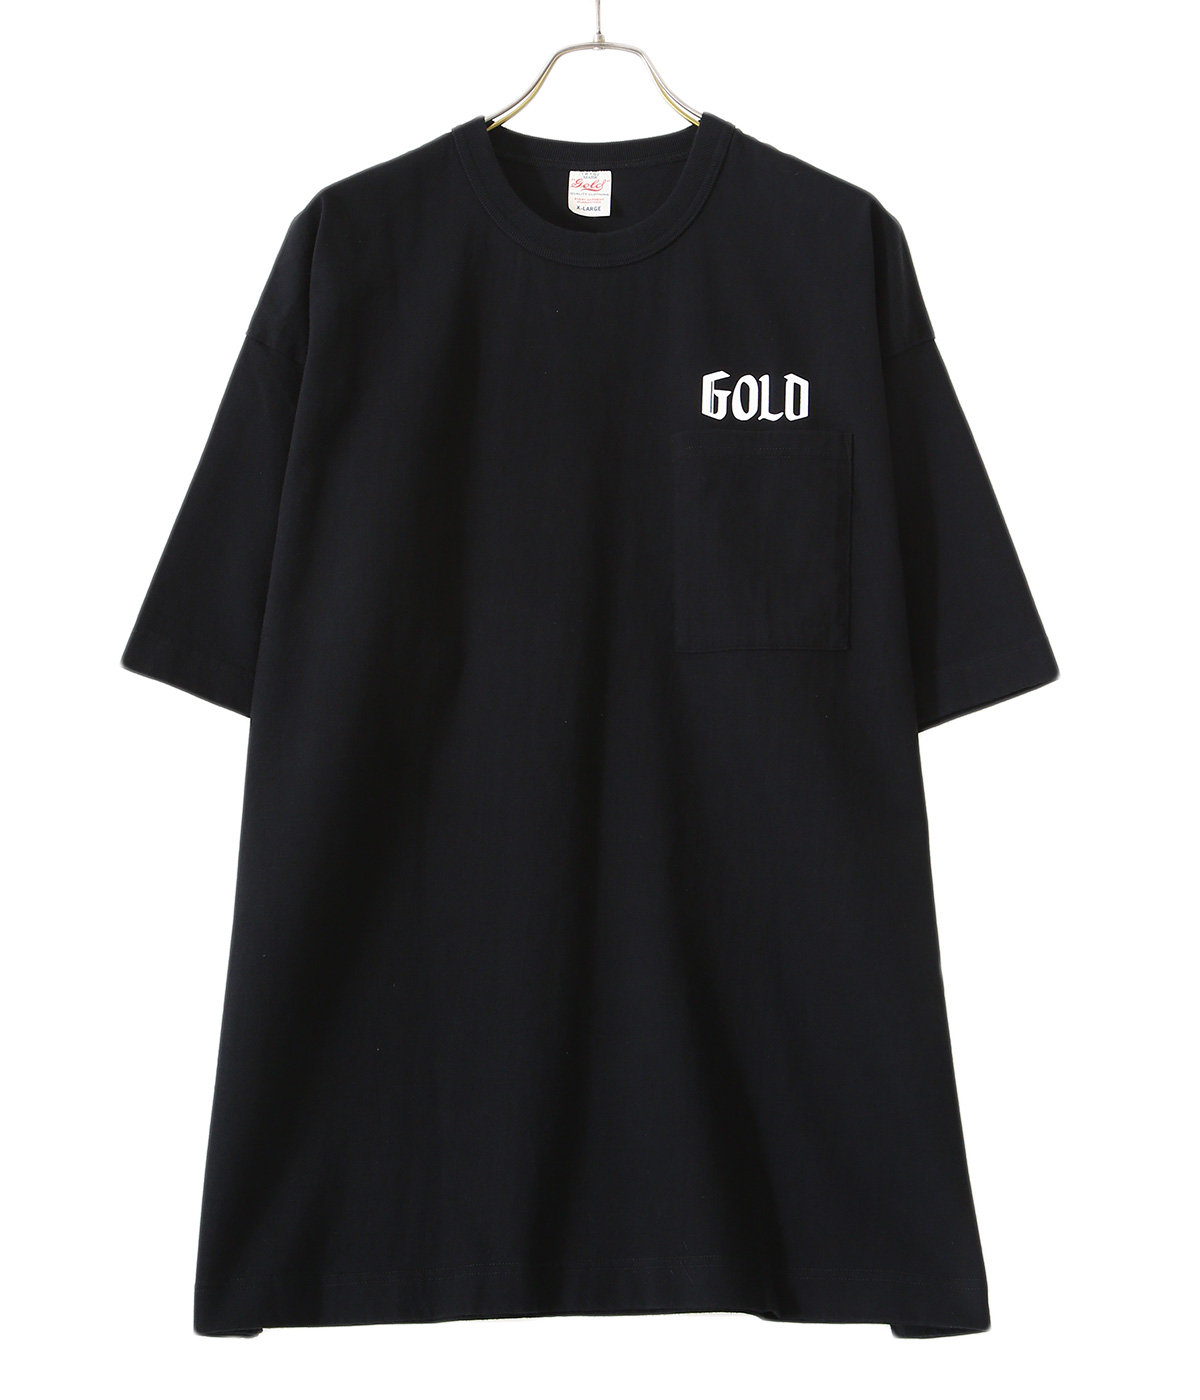 【ONLY ARK】別注14/- HEAVY COTTON S/S WIDE T-SHIRT -GOLD PRINT-